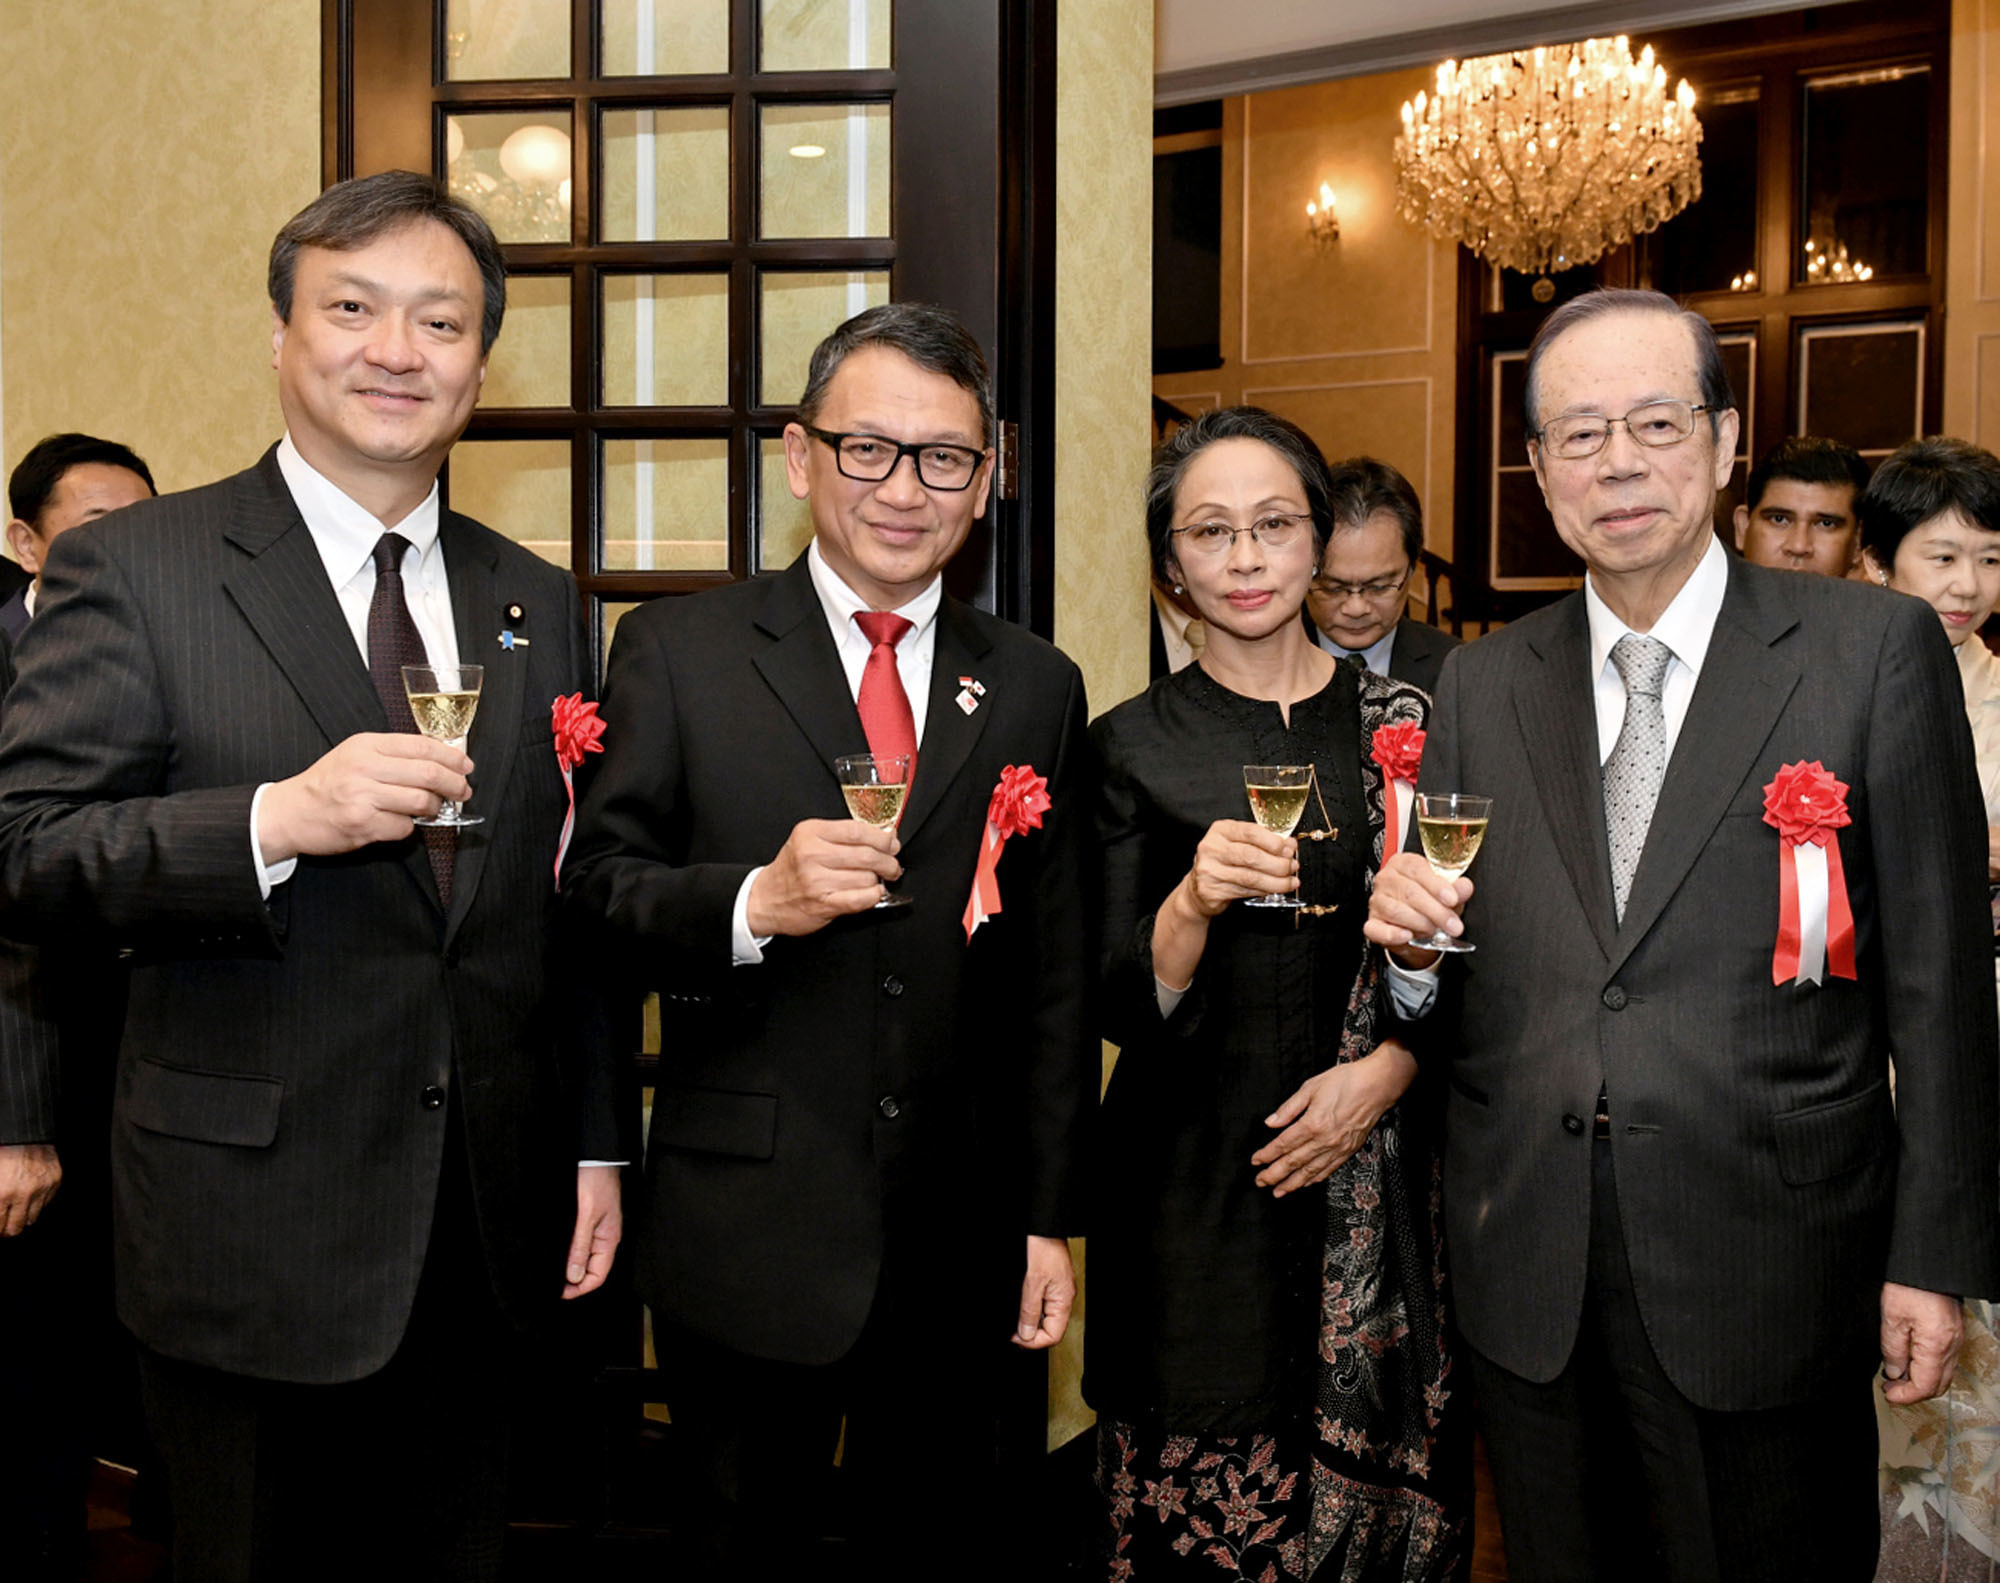 Indonesian Ambassador Arifin Tasrif (second from left), and his wife, Ratna Mirah, welcome Parliamentary Vice-Minister for Foreign Affairs Iwao Horii (left) and Yasuo Fukuda, former prime minister and president of the Japan-Indonesia Association, during a reception at the ambassador's residence on Jan. 24 to celebrate the 60th anniversary of diplomatic relations between Indonesia and Japan. |  YOSHIAKI MIURA